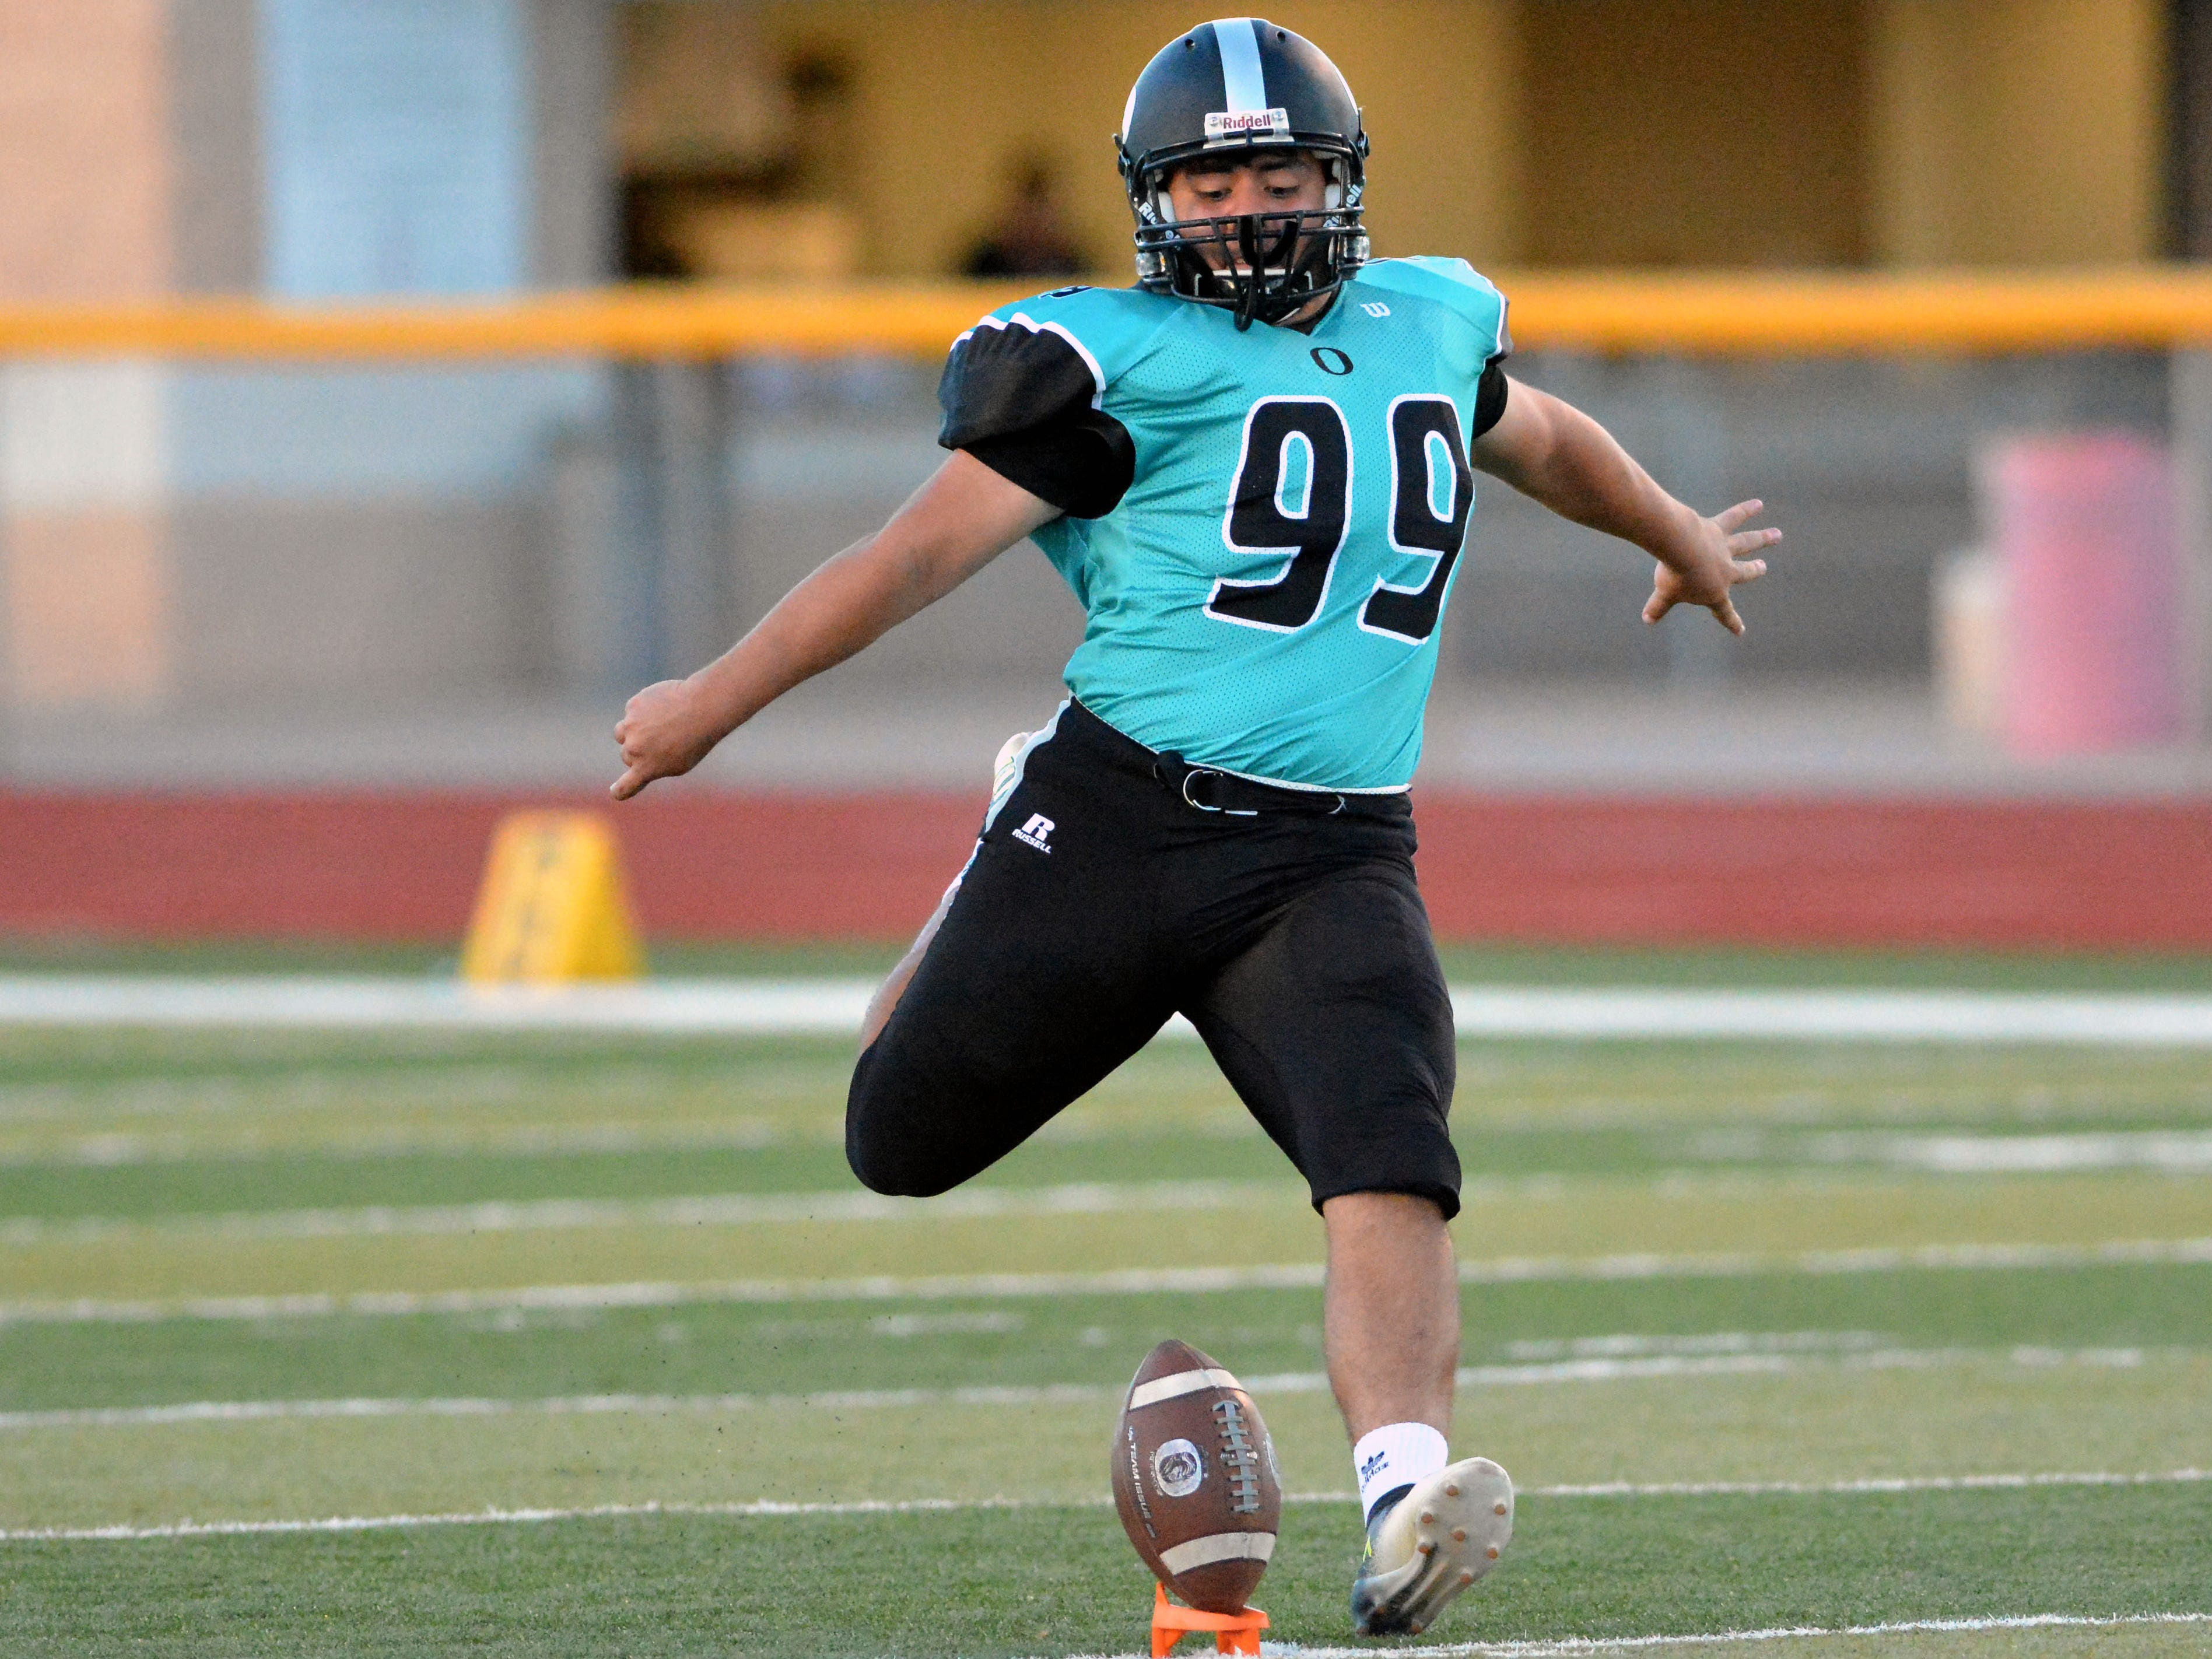 Oñate's Julian Atilano kicks off to begin the game against Cleveland High on Friday night.